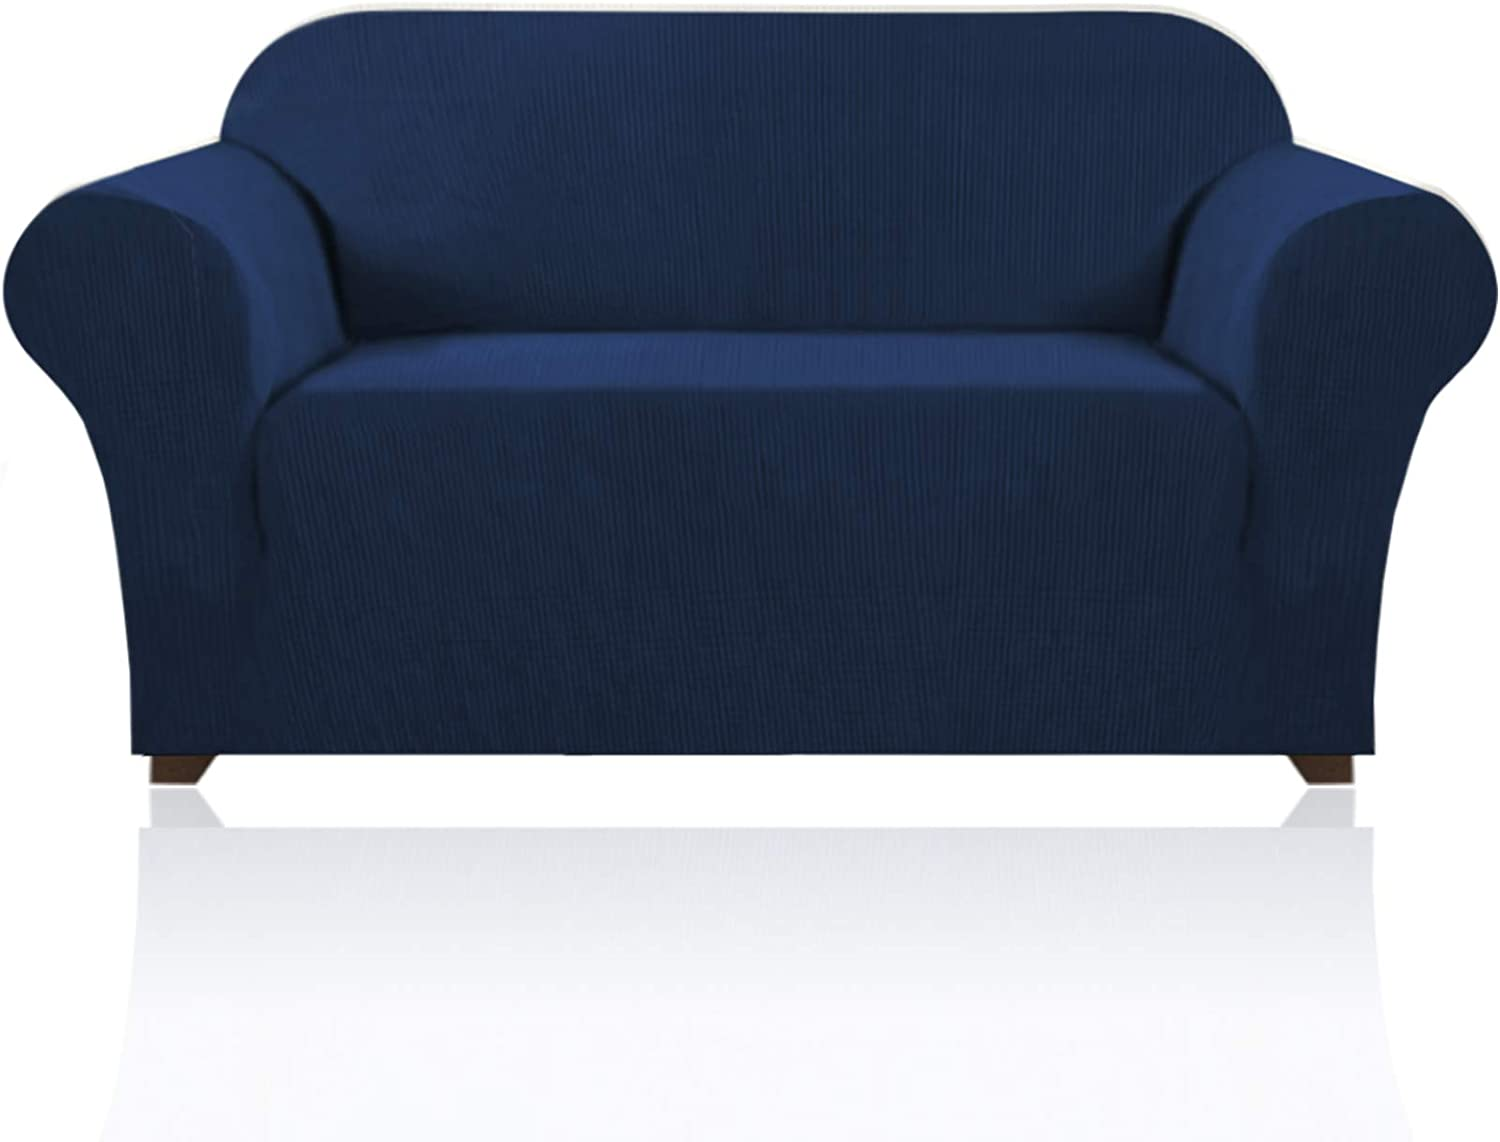 Stretch Sofa Slipcover 1 Piece Sofa Cover for 2 Cushion Couch Furniture Protector/Cover Couch with Elastic Bottom Soft and Durable Sofa Cover Pet Protector (Loveseat, Navy)